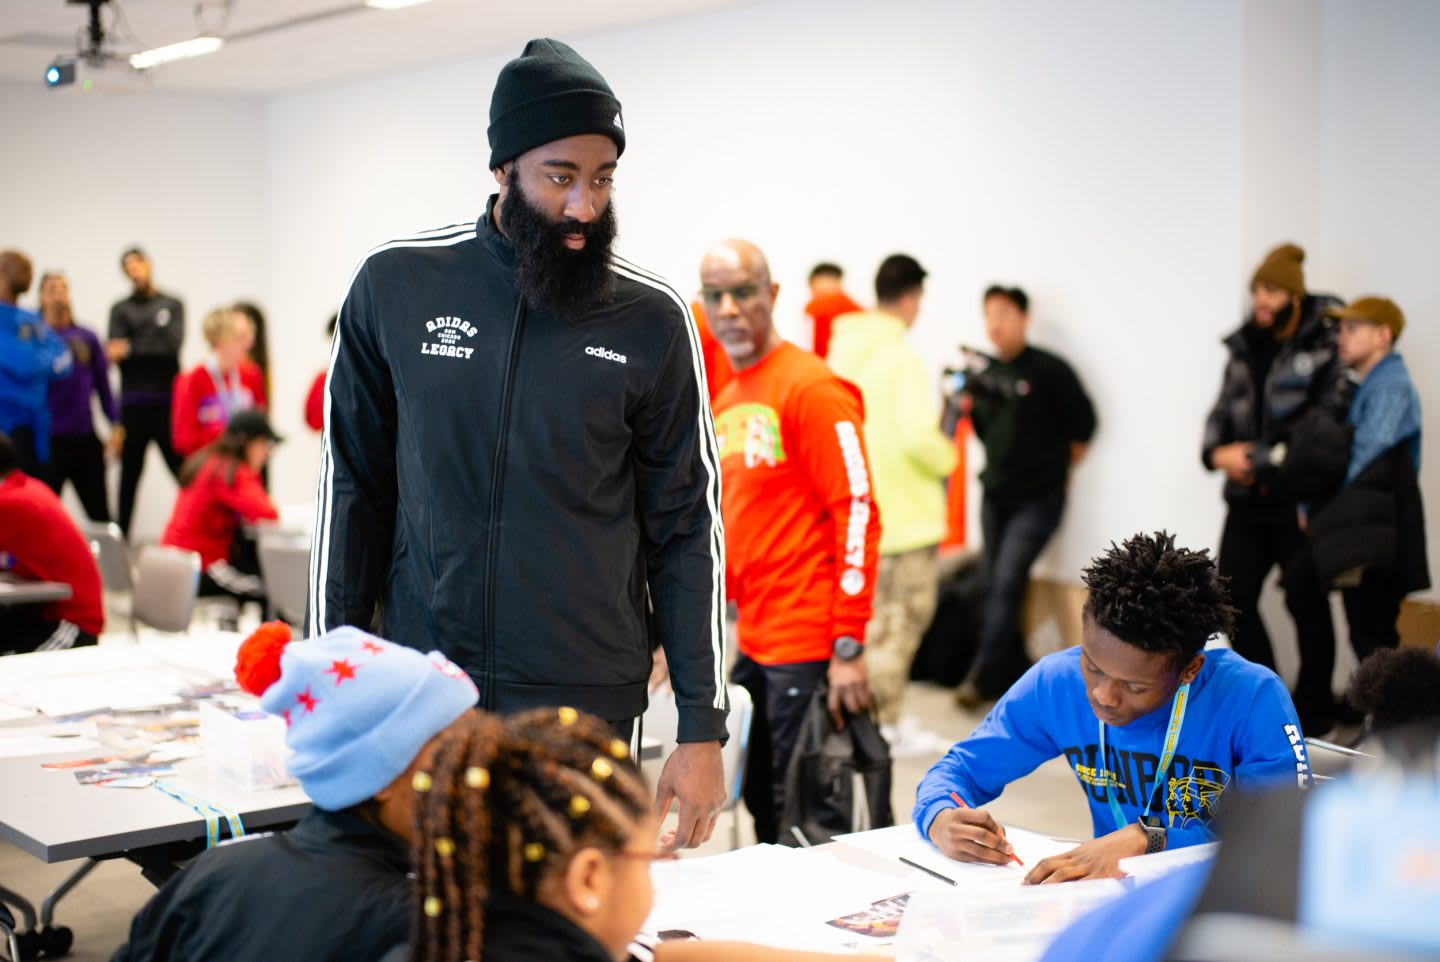 NBA basketball player James Harden at the Career Day getting in touch with children, while they are working on projects. Basketball, sports, leadership, role model, icon, career, development, GamePlan A.